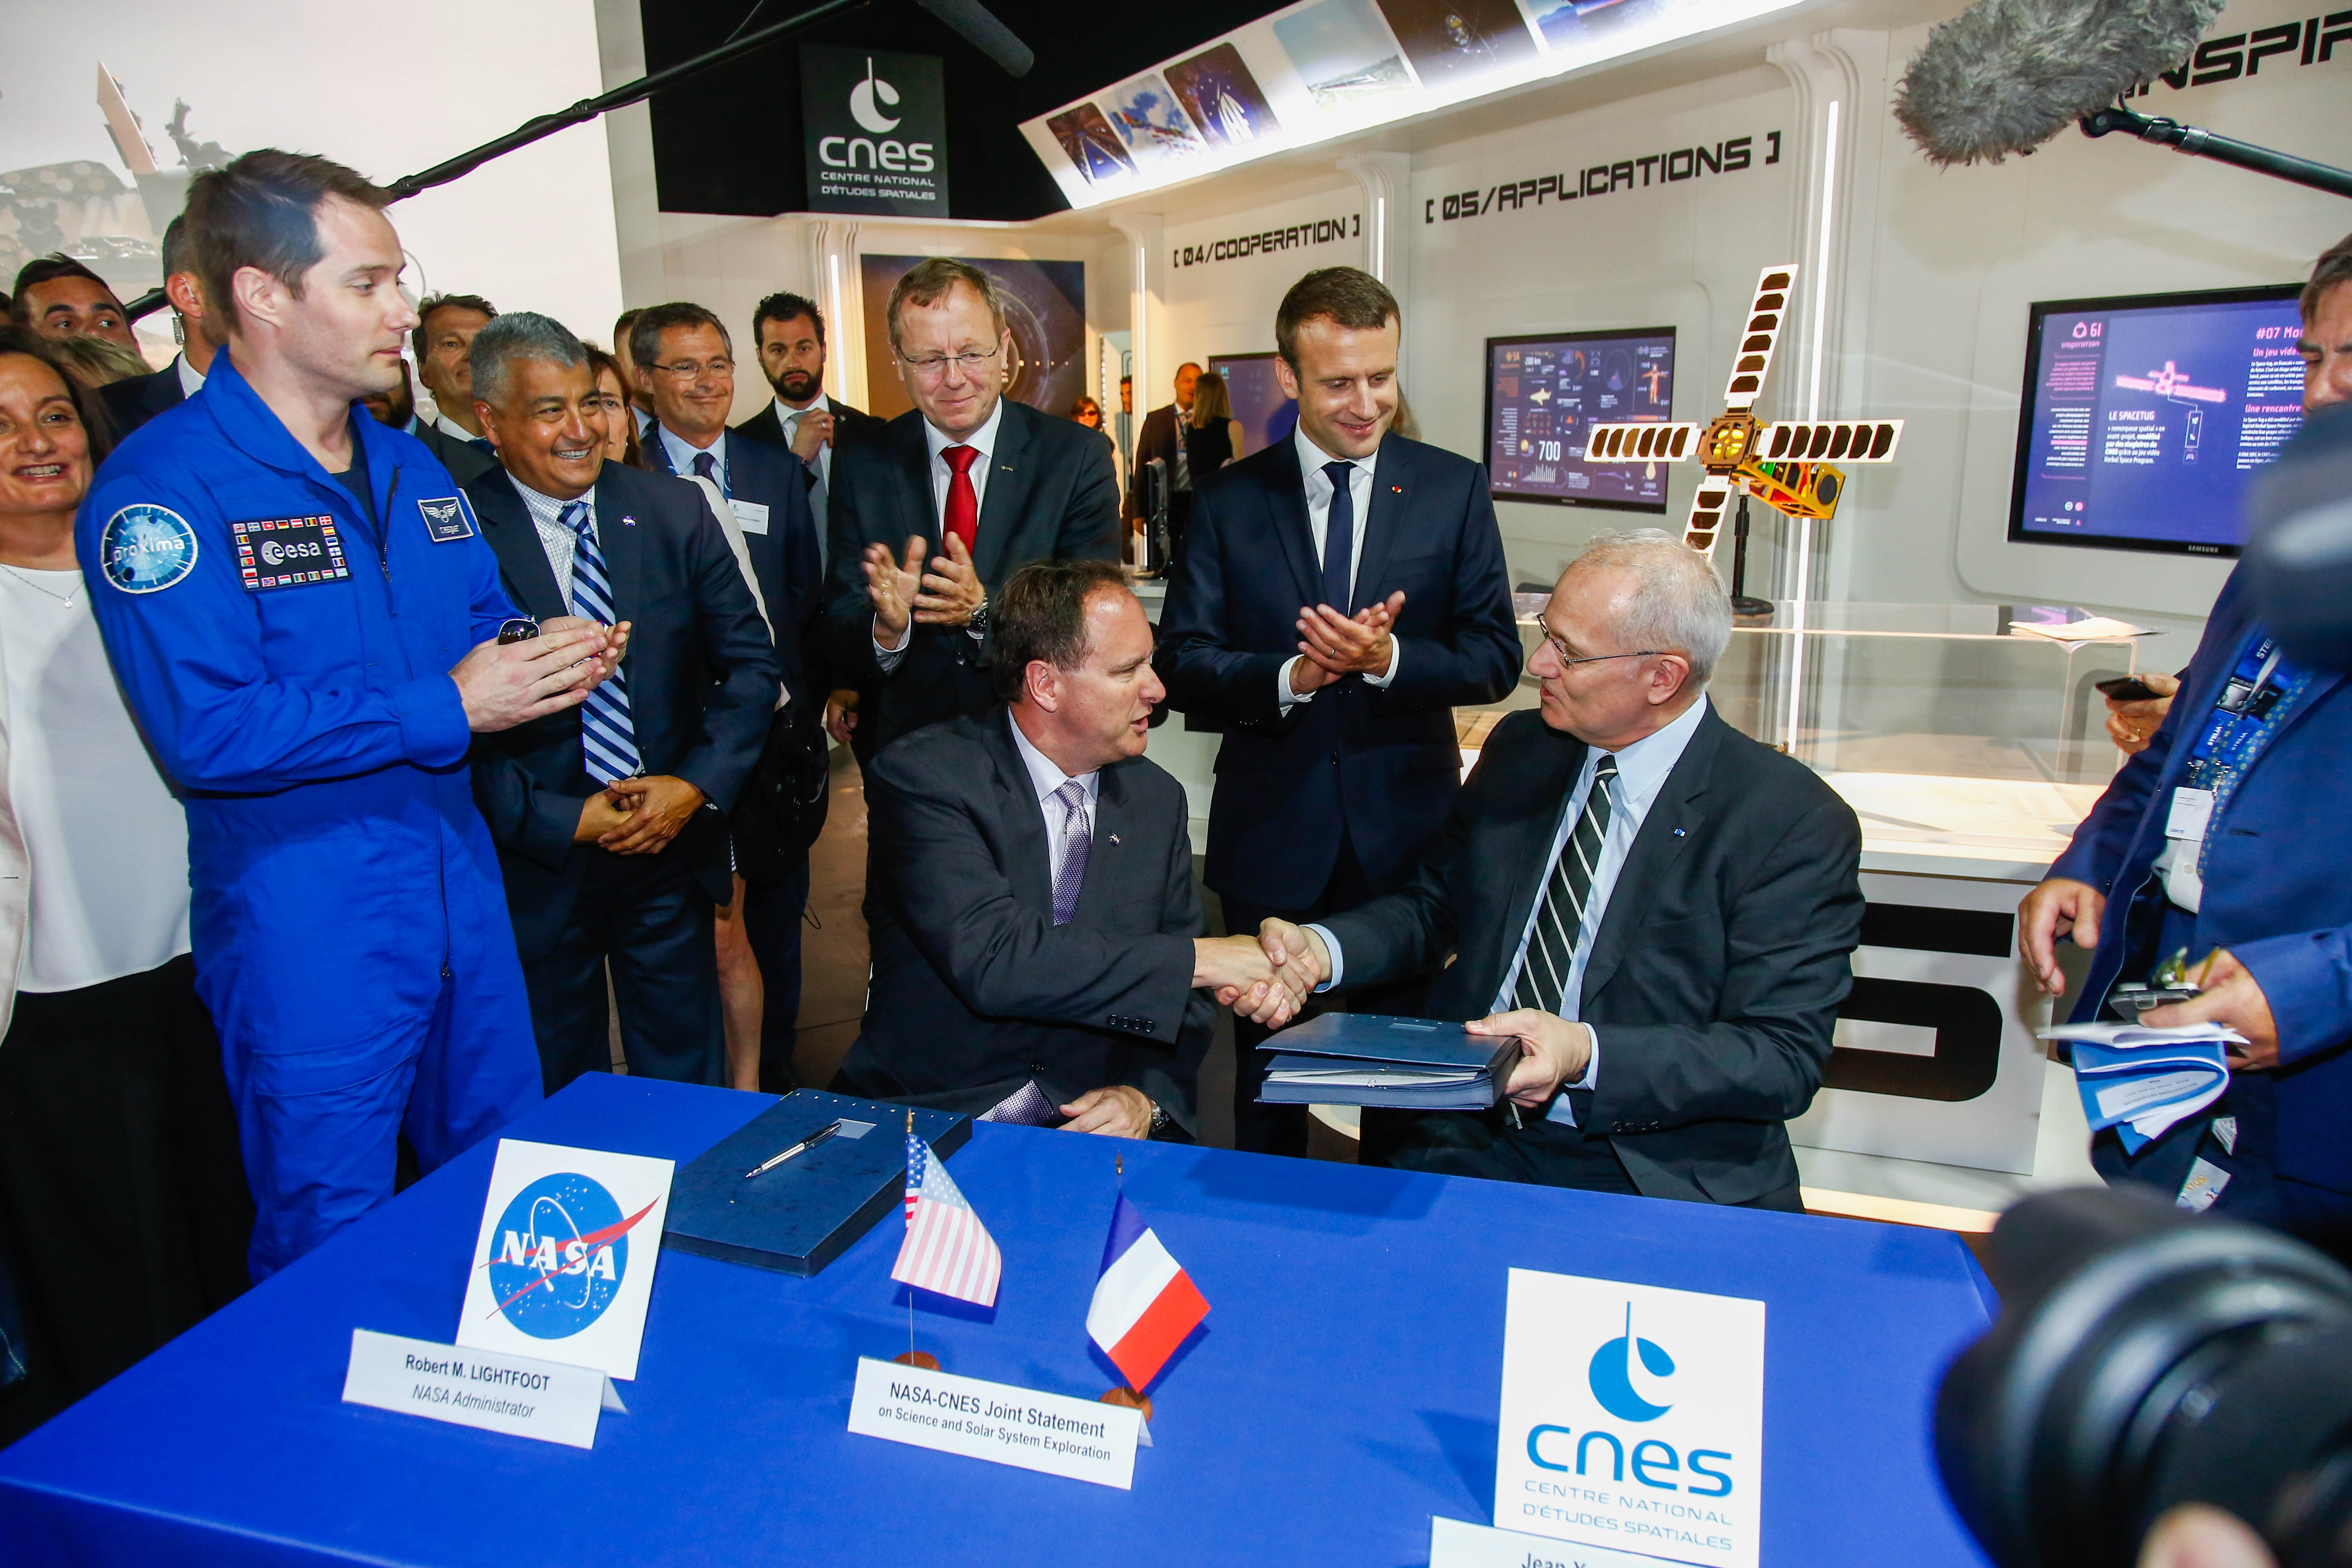 is_bourget_2017_signature_nasa.jpg